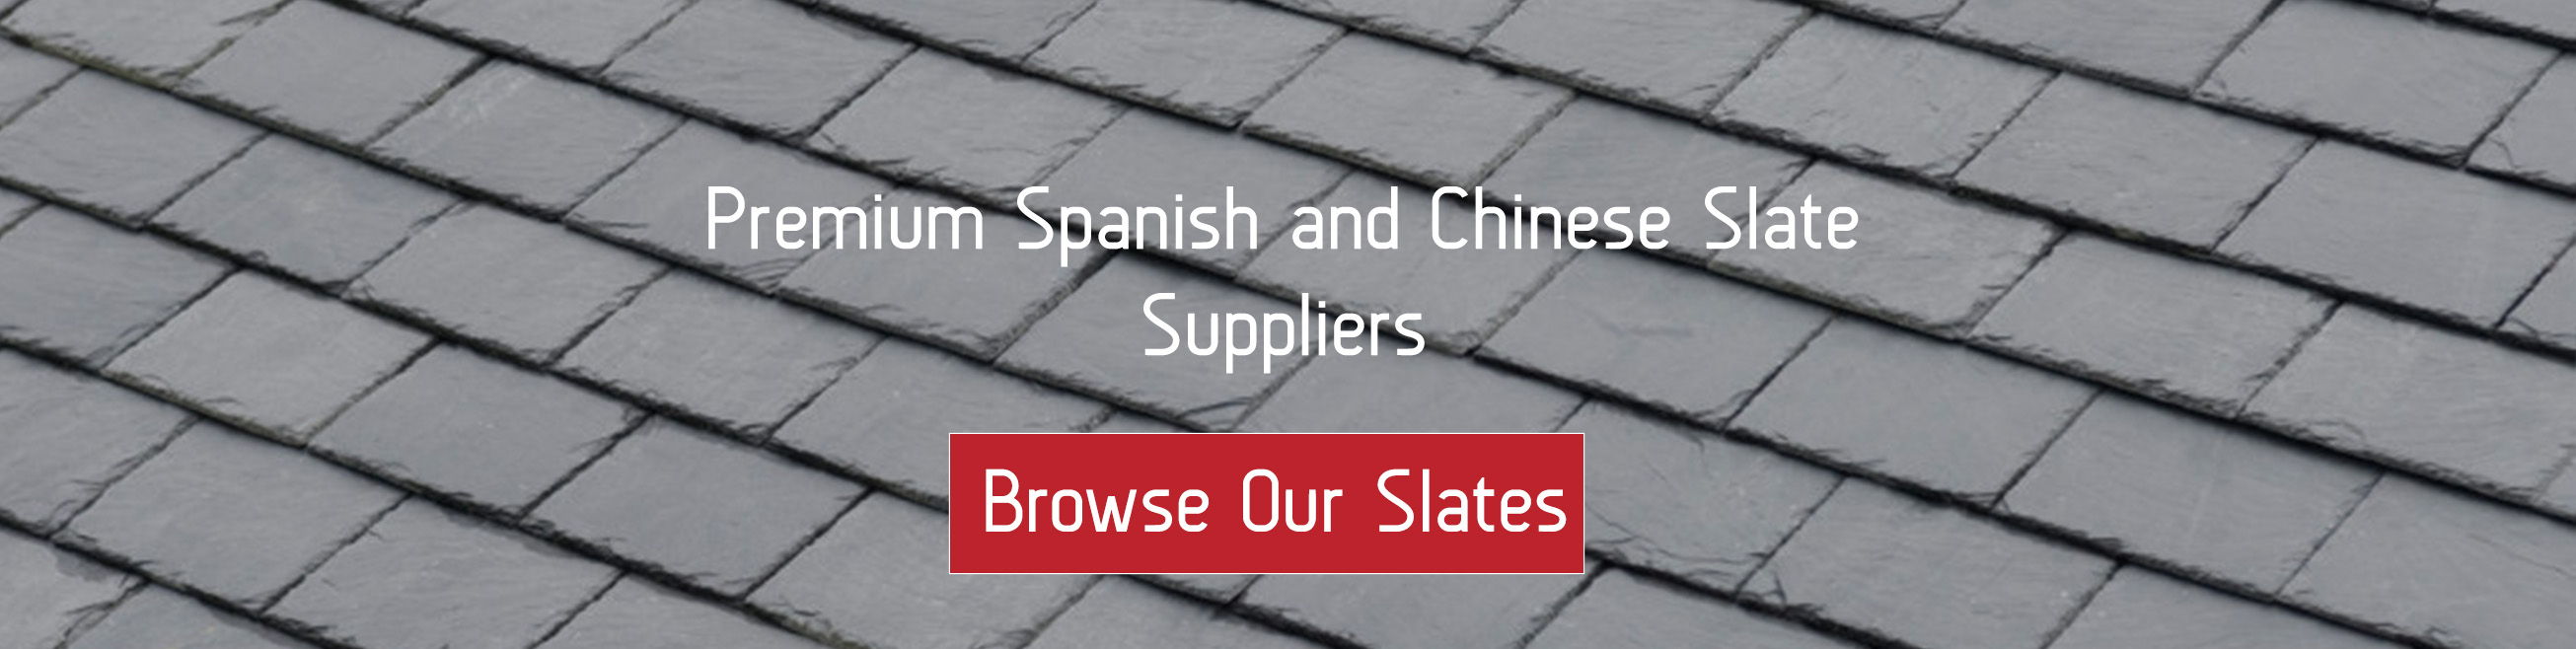 Spanish and Chinese slate banner